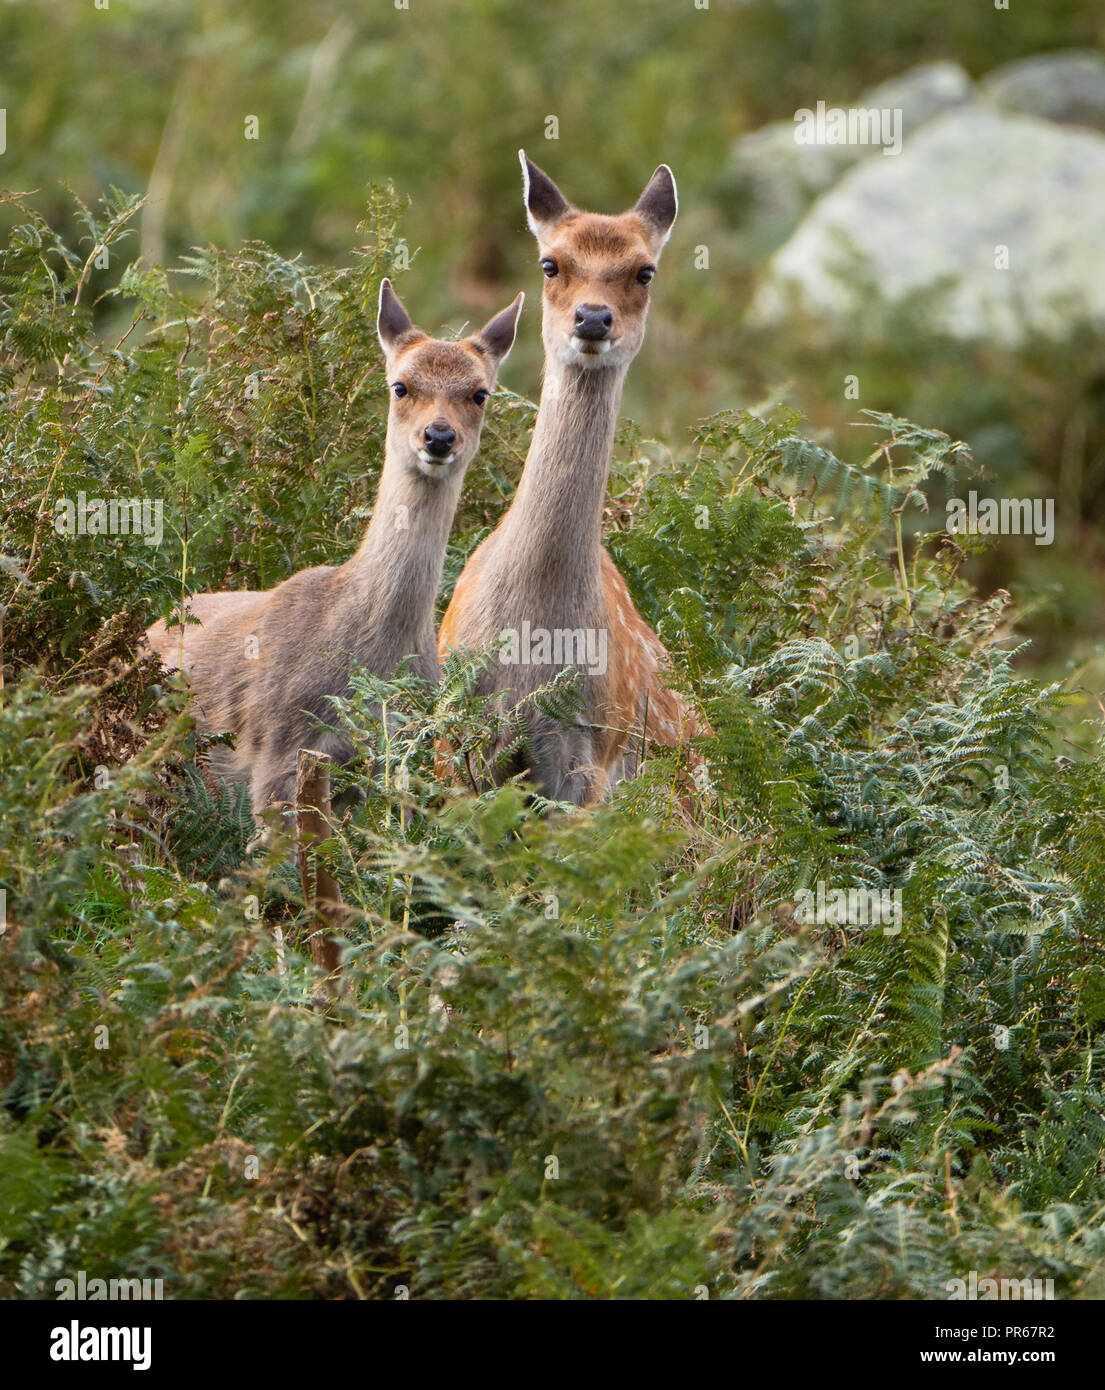 Sika deer Cervus nippon peering out from bracken covered cliffs on the island of Lundy off the north coast of Devon UK - Stock Image